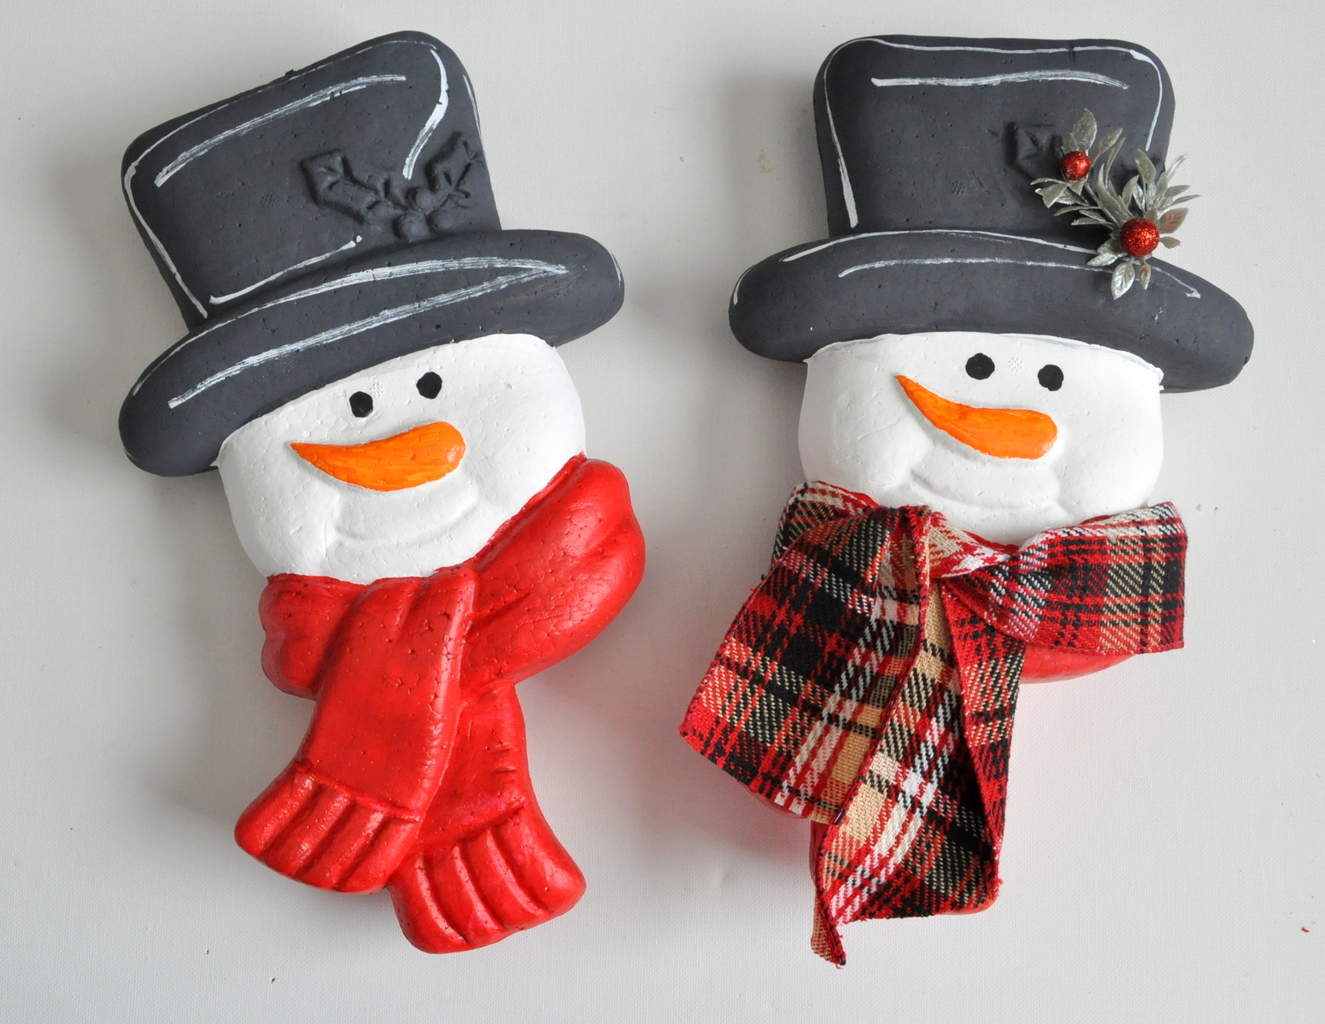 Embellishing foam snowman ornaments